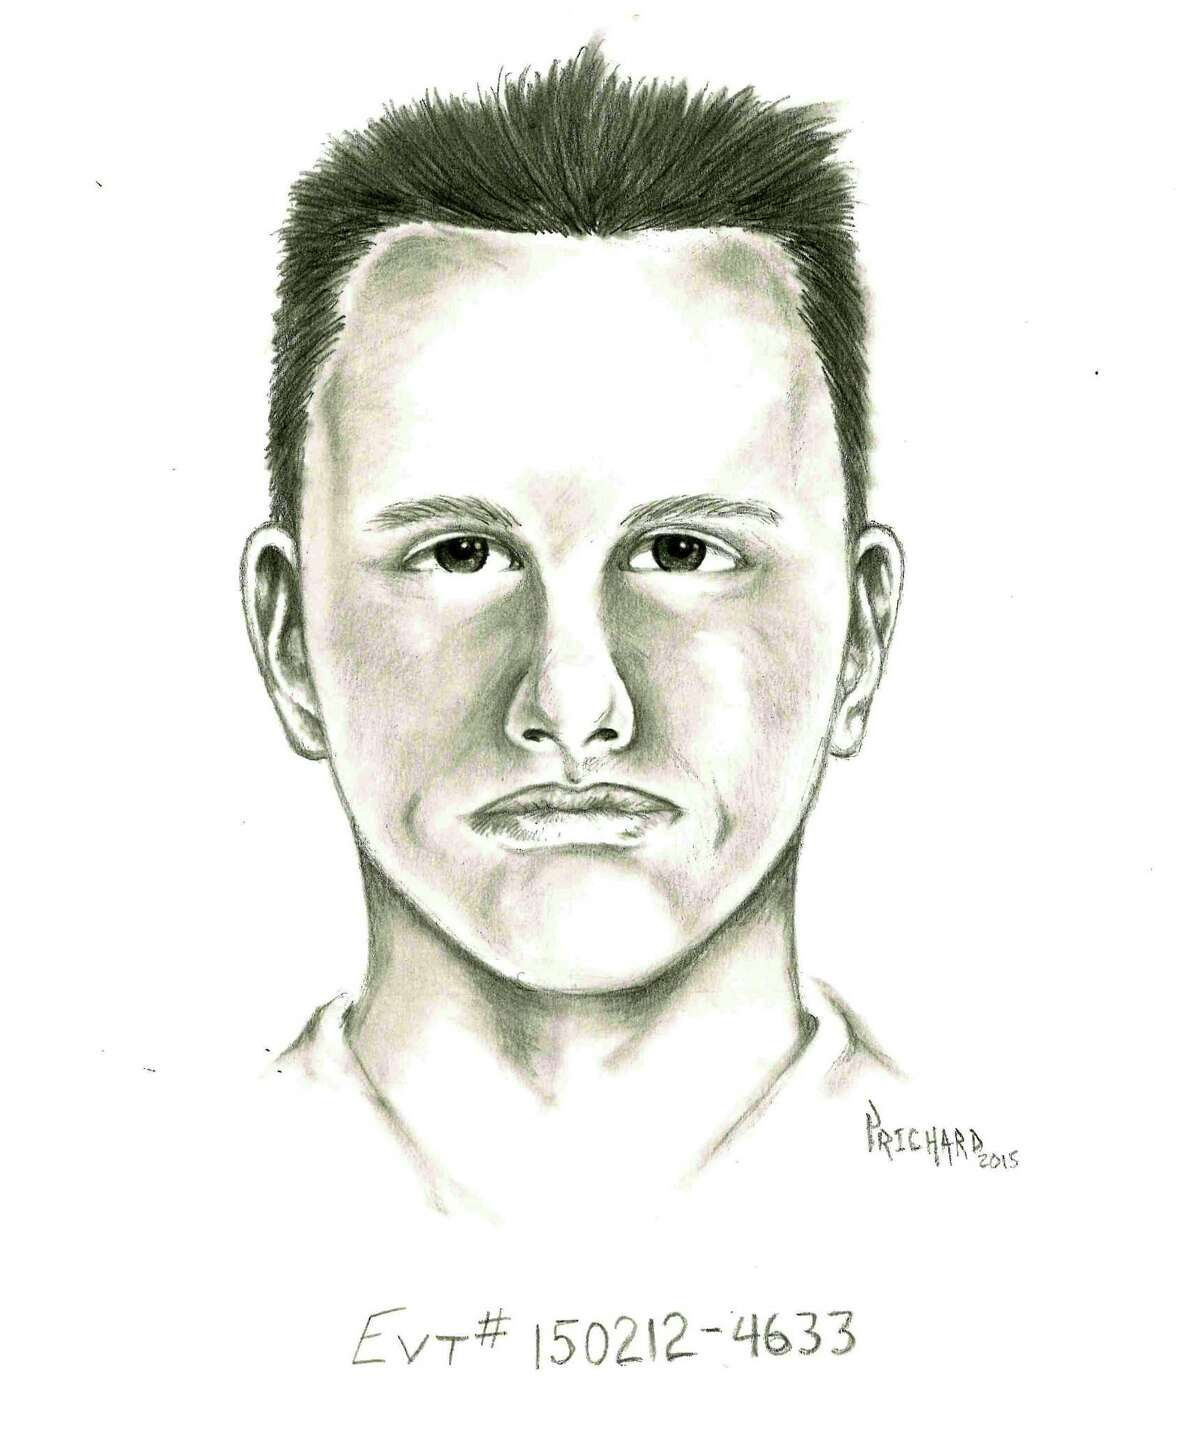 This undated artist rendition provided by the Las Vegas Metropolitan Police Department shows a composite sketch of a suspect police are seeking the publicís assistance in identifying, whom they believed was involved in a road rage shooting in Las Vegas on Feb. 12, 2015. A Las Vegas mother of four killed in a road rage shooting last week got in her car with her adult son and his gun and drove around their neighborhood looking for the assailant who ended up shooting her in a residential cul-de-sac, police said Tuesday, Feb. 17, 2015. In a change from earlier accounts, police said 44-year-old Tammy Meyers had her teenage daughter run in the house to fetch her armed son, who then went with her as she drove to find the driver who had earlier stopped his car in front of hers, got out and approached her with angry words. (AP Photo/Las Vegas Metropolitan Police Department)